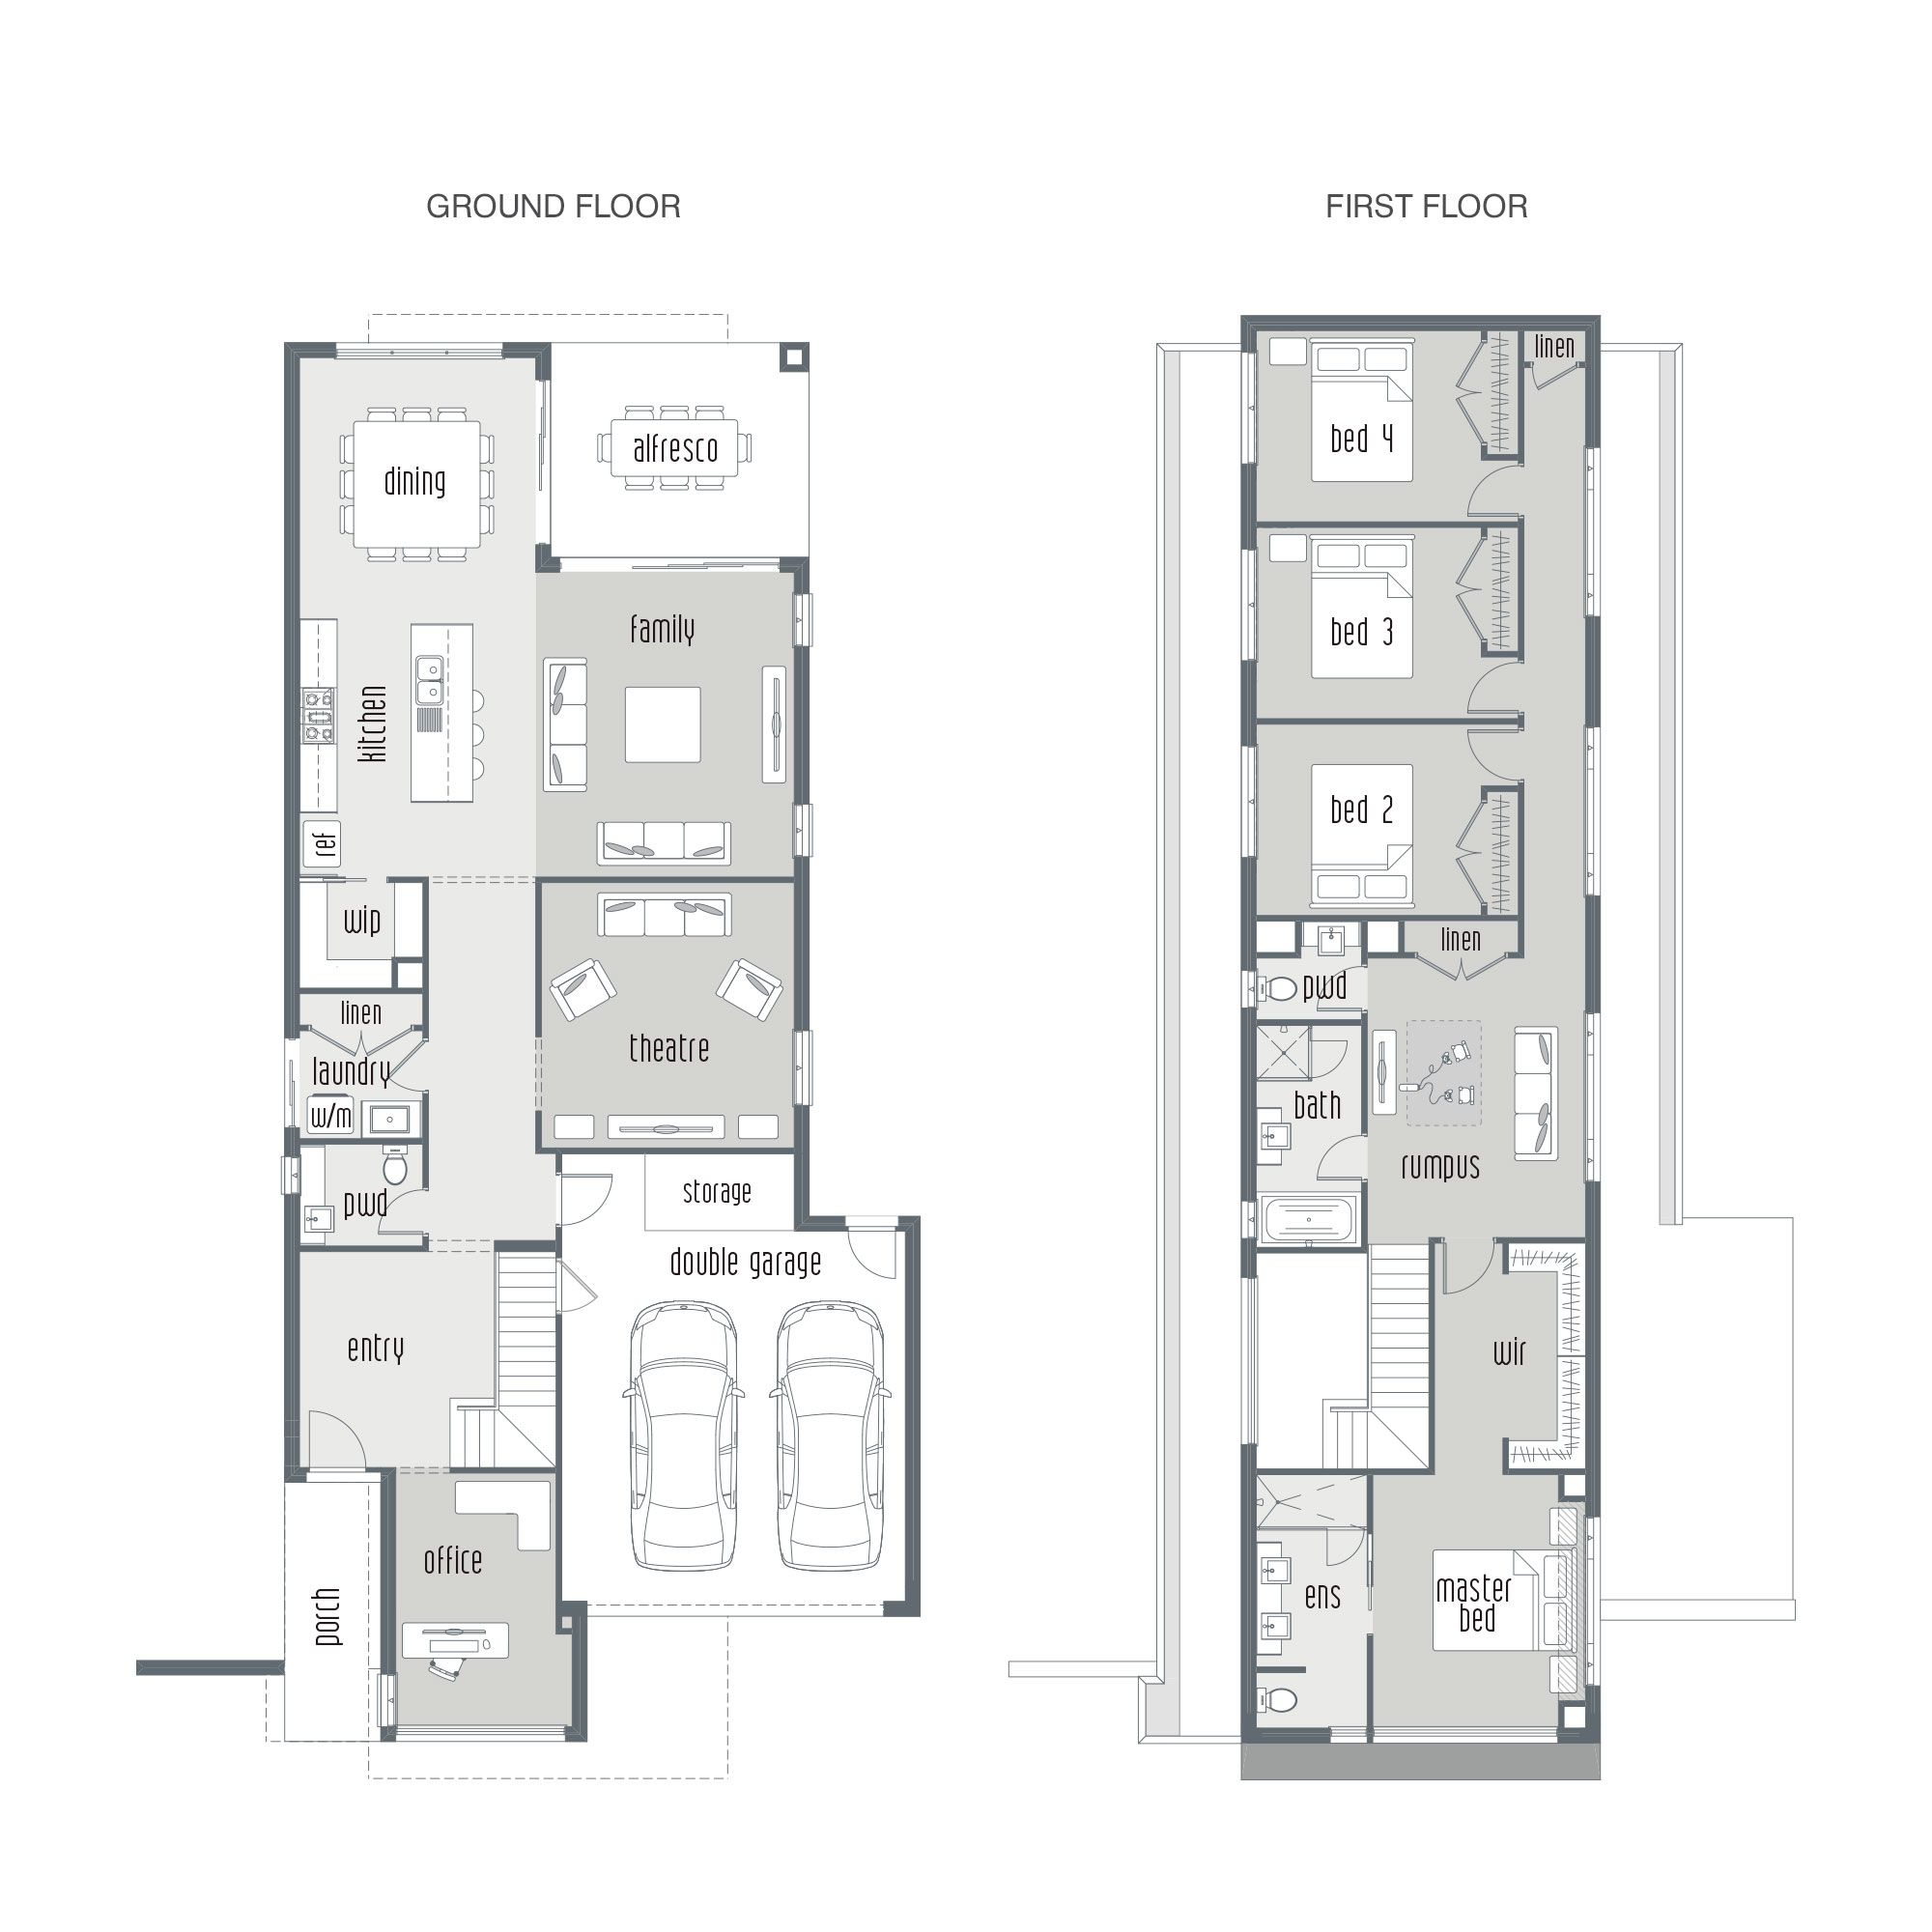 dual occupancy house plans - Google Search | Tiny house ideas ...